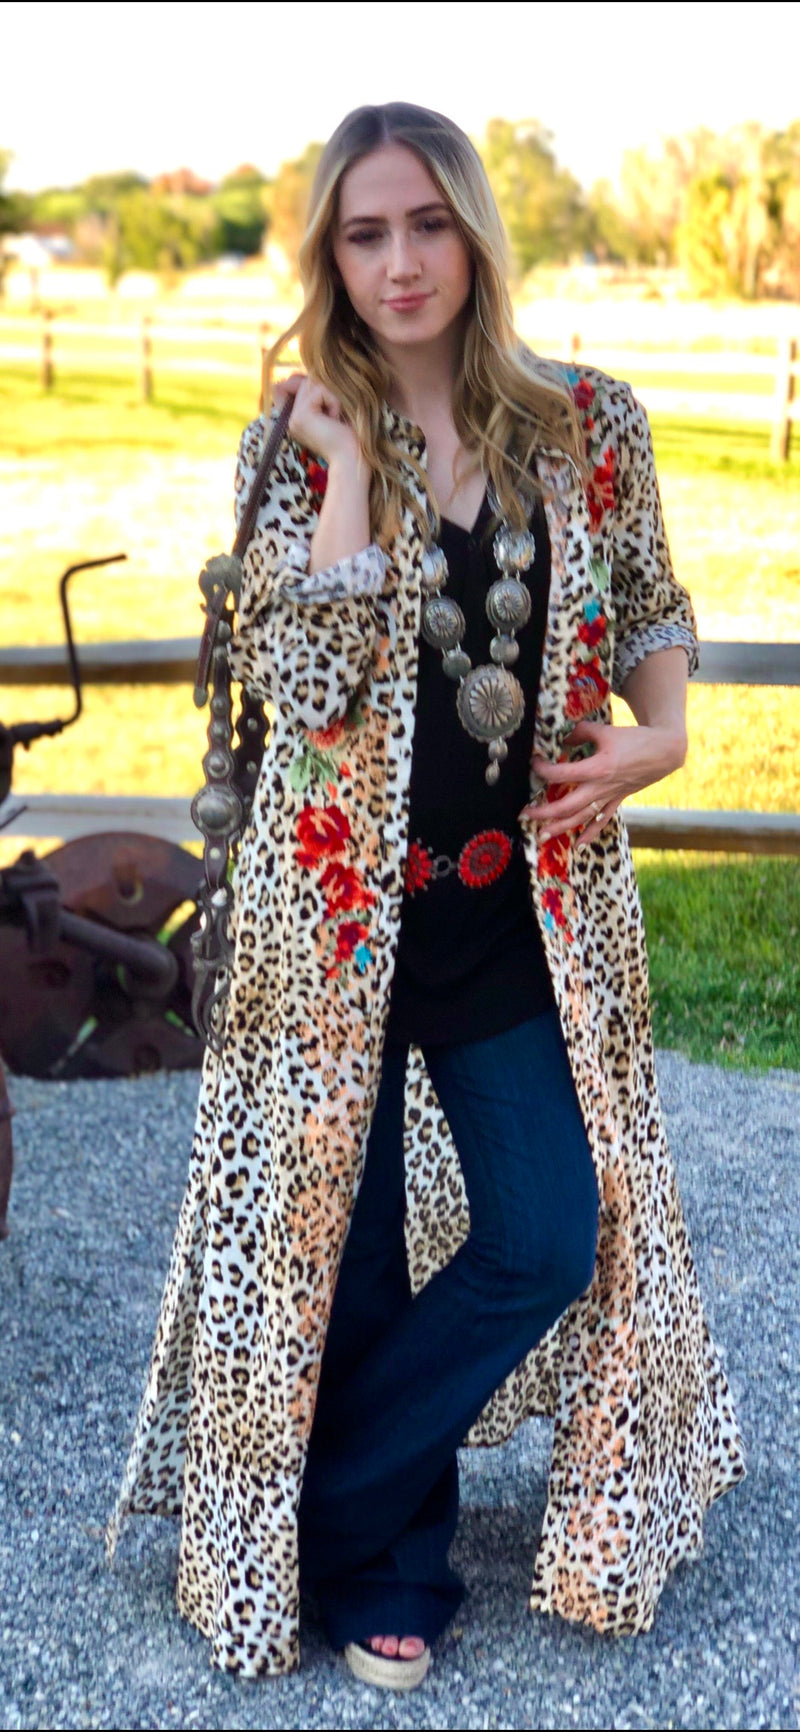 The Cheetah Denver Embroidered Dress